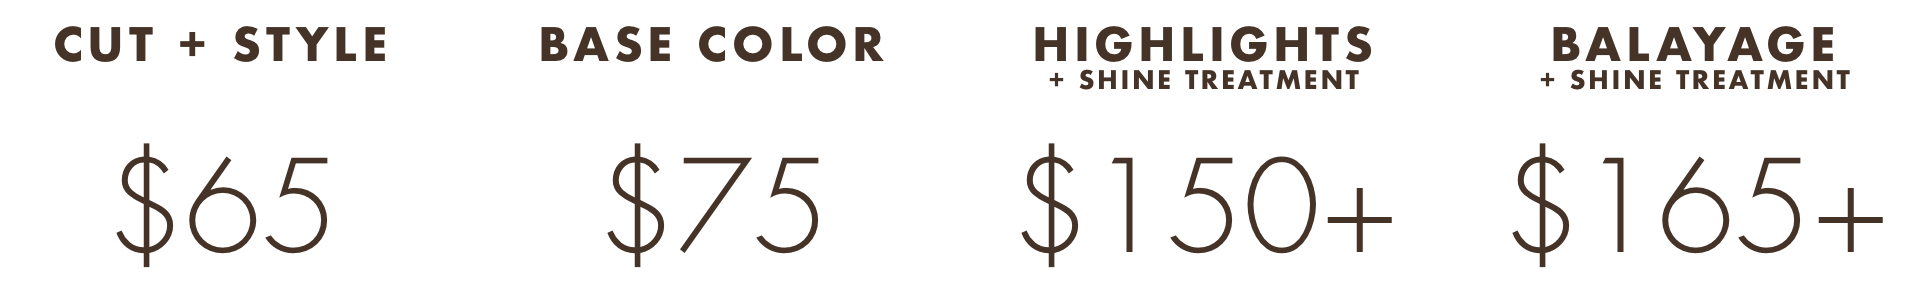 Stylist Pricing Web Insert.png